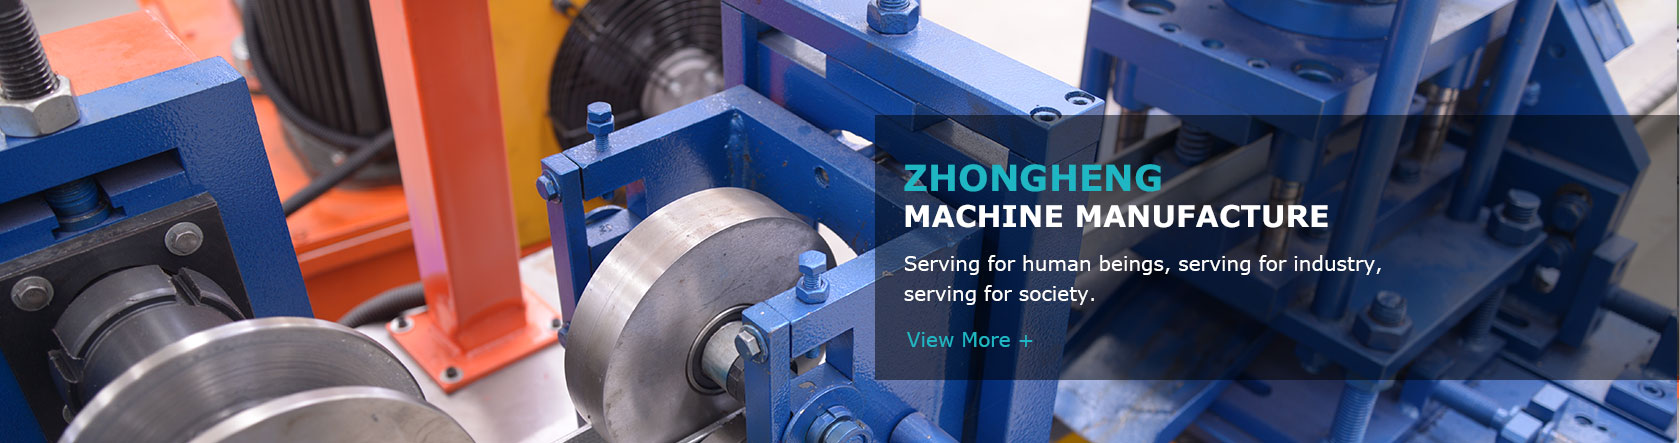 zhongheng machine customers